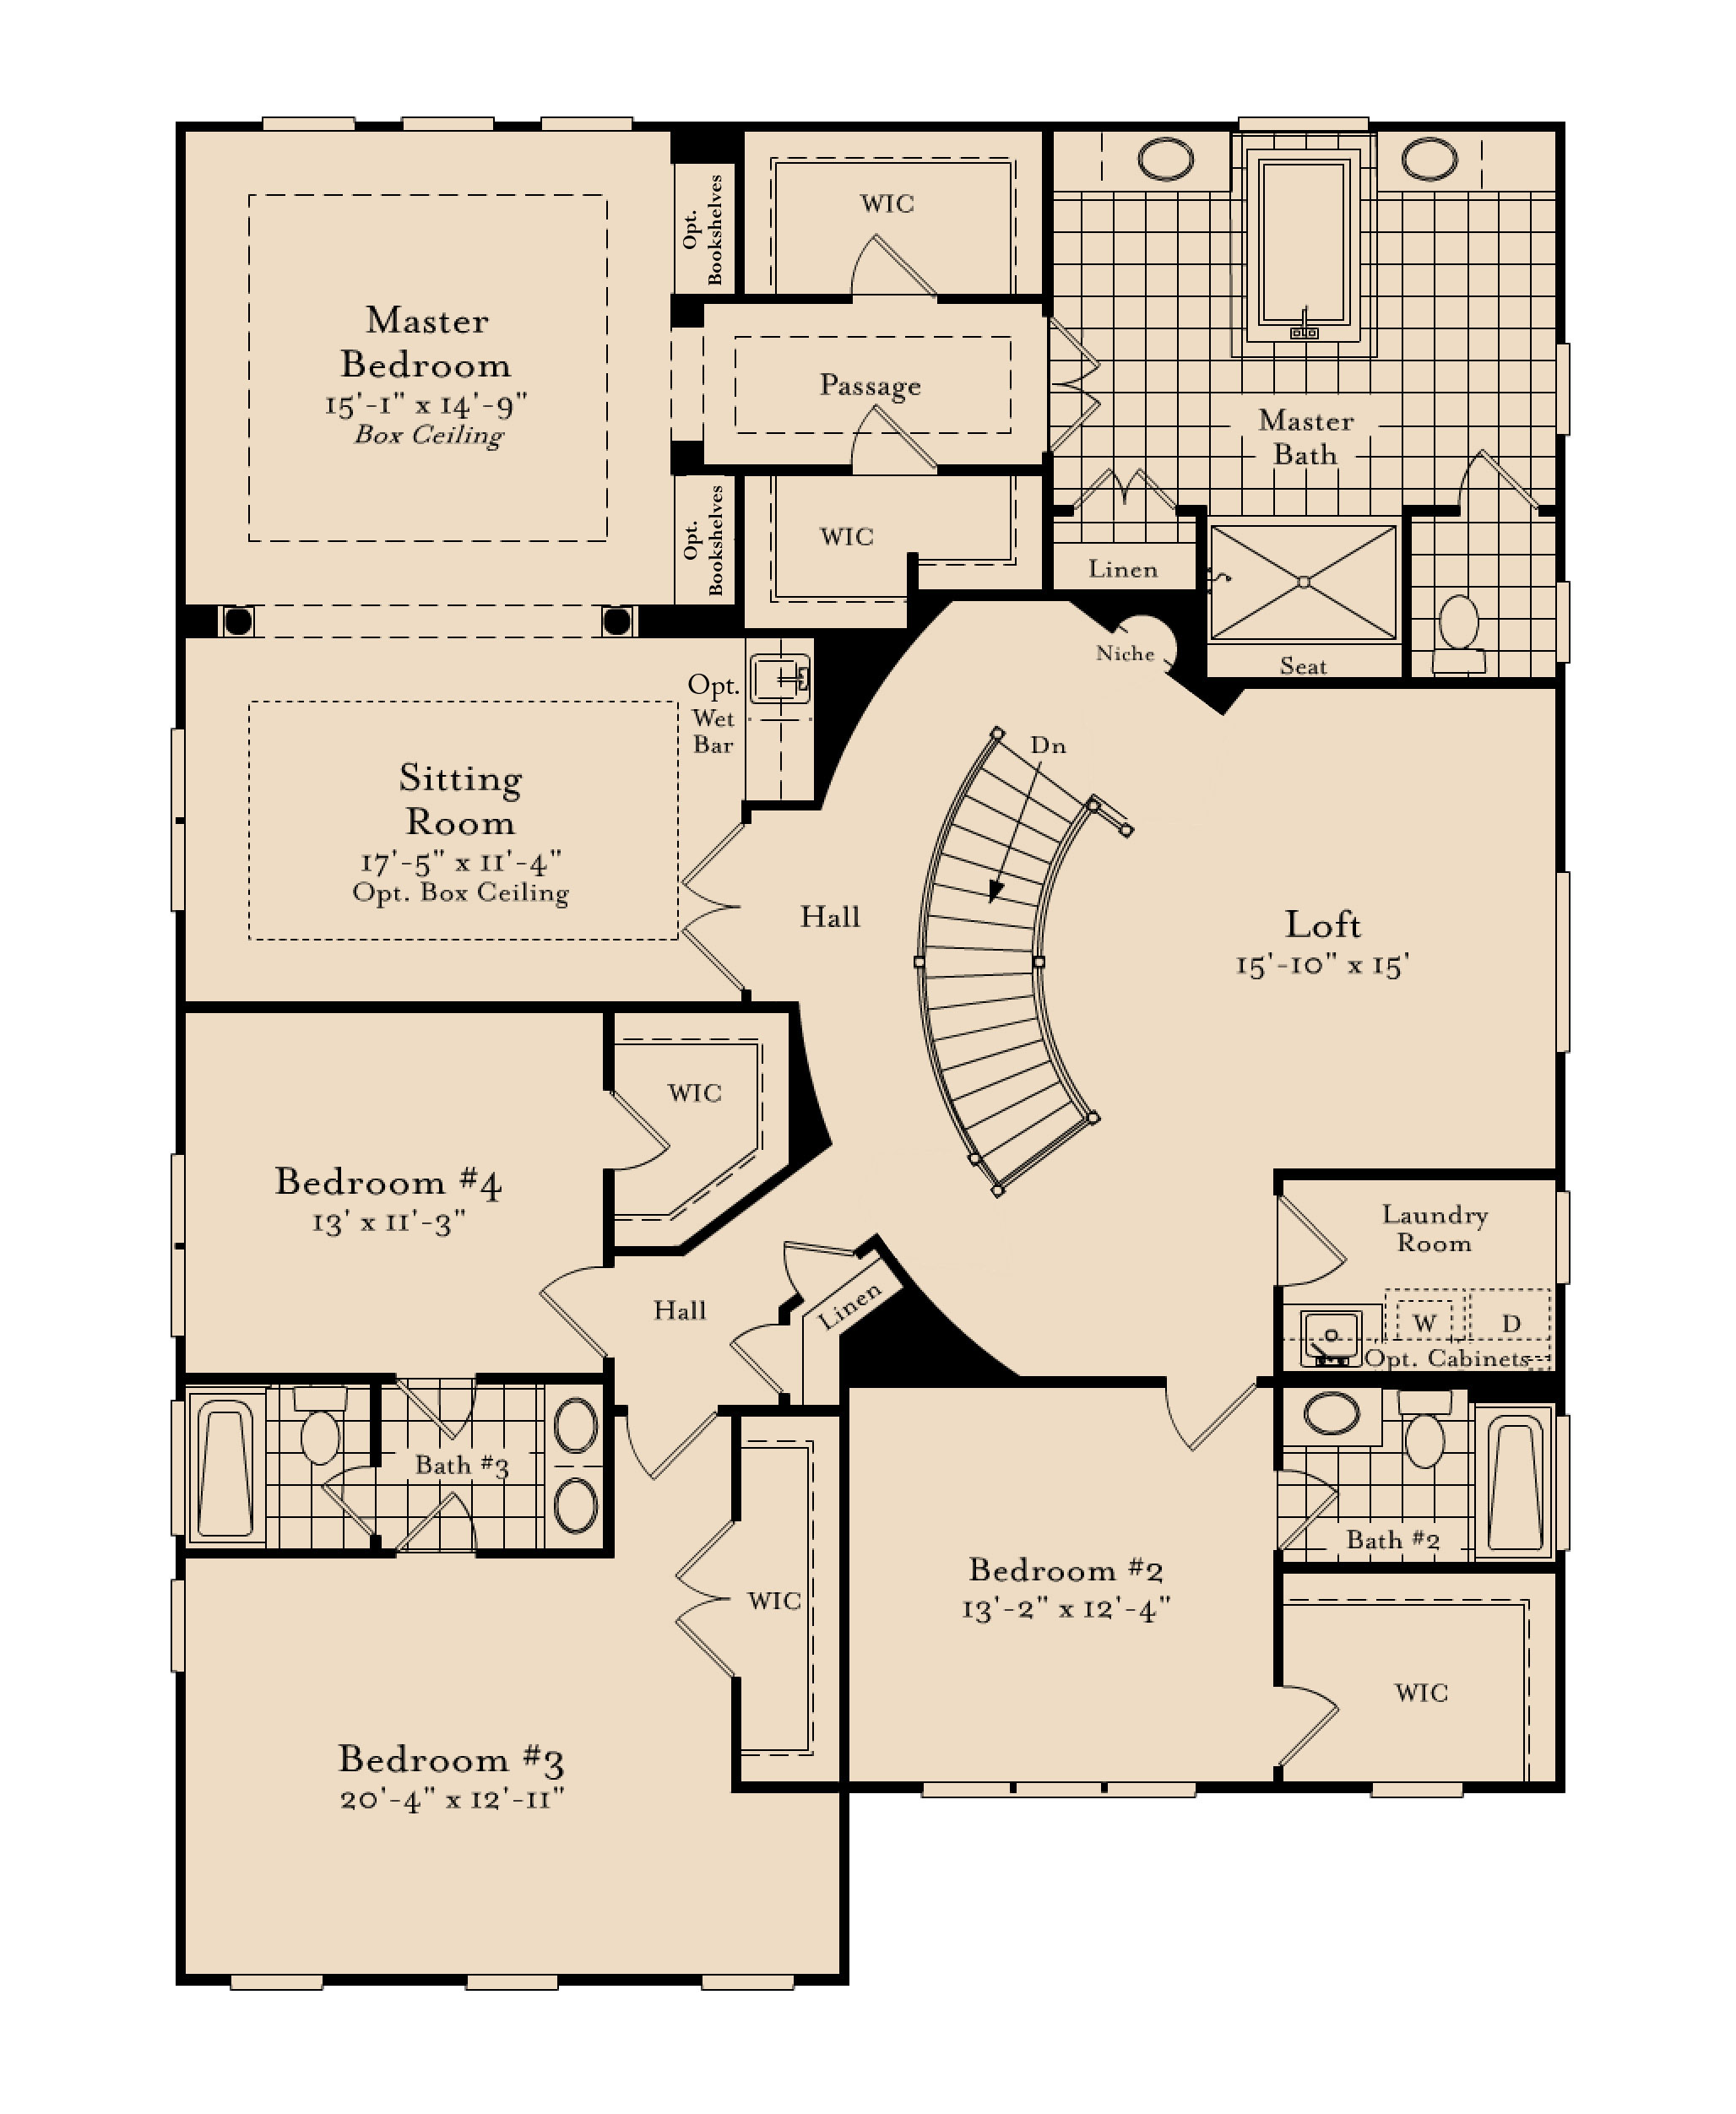 The second floor plan for the Columbia model home.